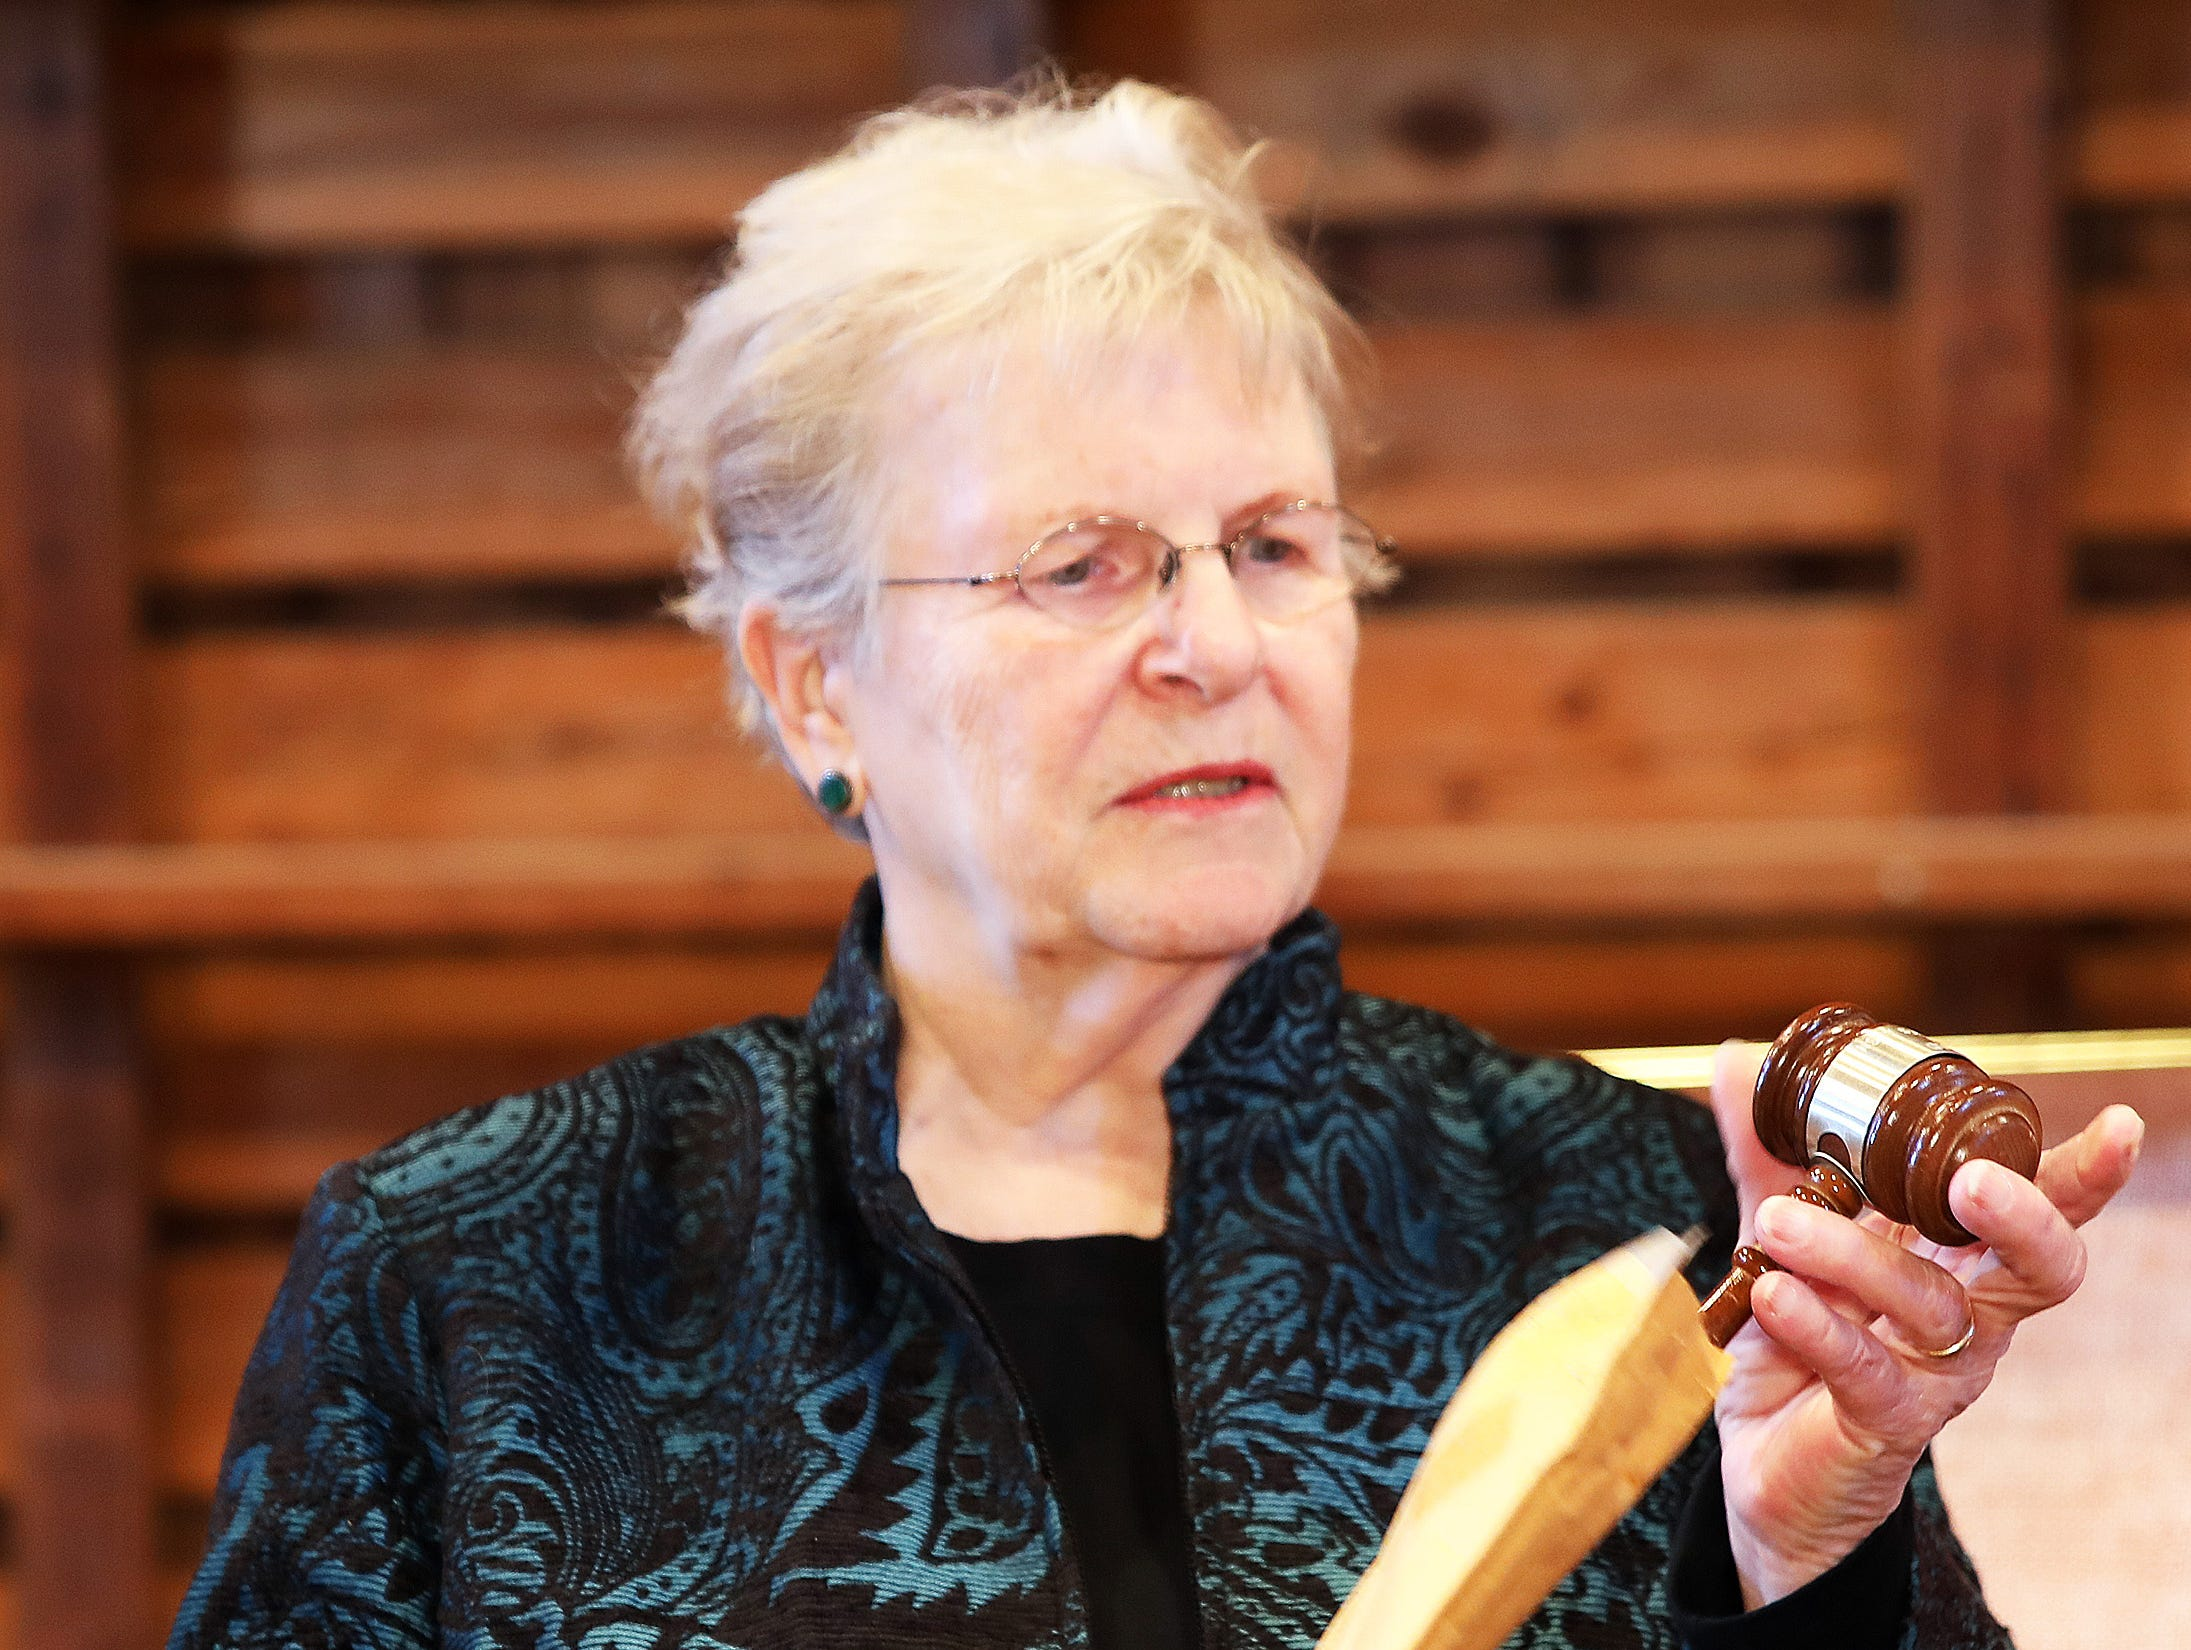 Past President of the Johnston Historical Society Mary Jane Paez unwraps the mayor's gavel during the opening of the 25-year old time capsule from 1994 as the city of Johnston celebrates its 50th anniversary at the Simpson House and Barn Museum at 6161 Northglenn Drive on Sunday, March 10, 2019, in Johnston. The city was incorporated in 1969 with 2,236 residents and 50 years later, over 21,000 residents call Johnston home.